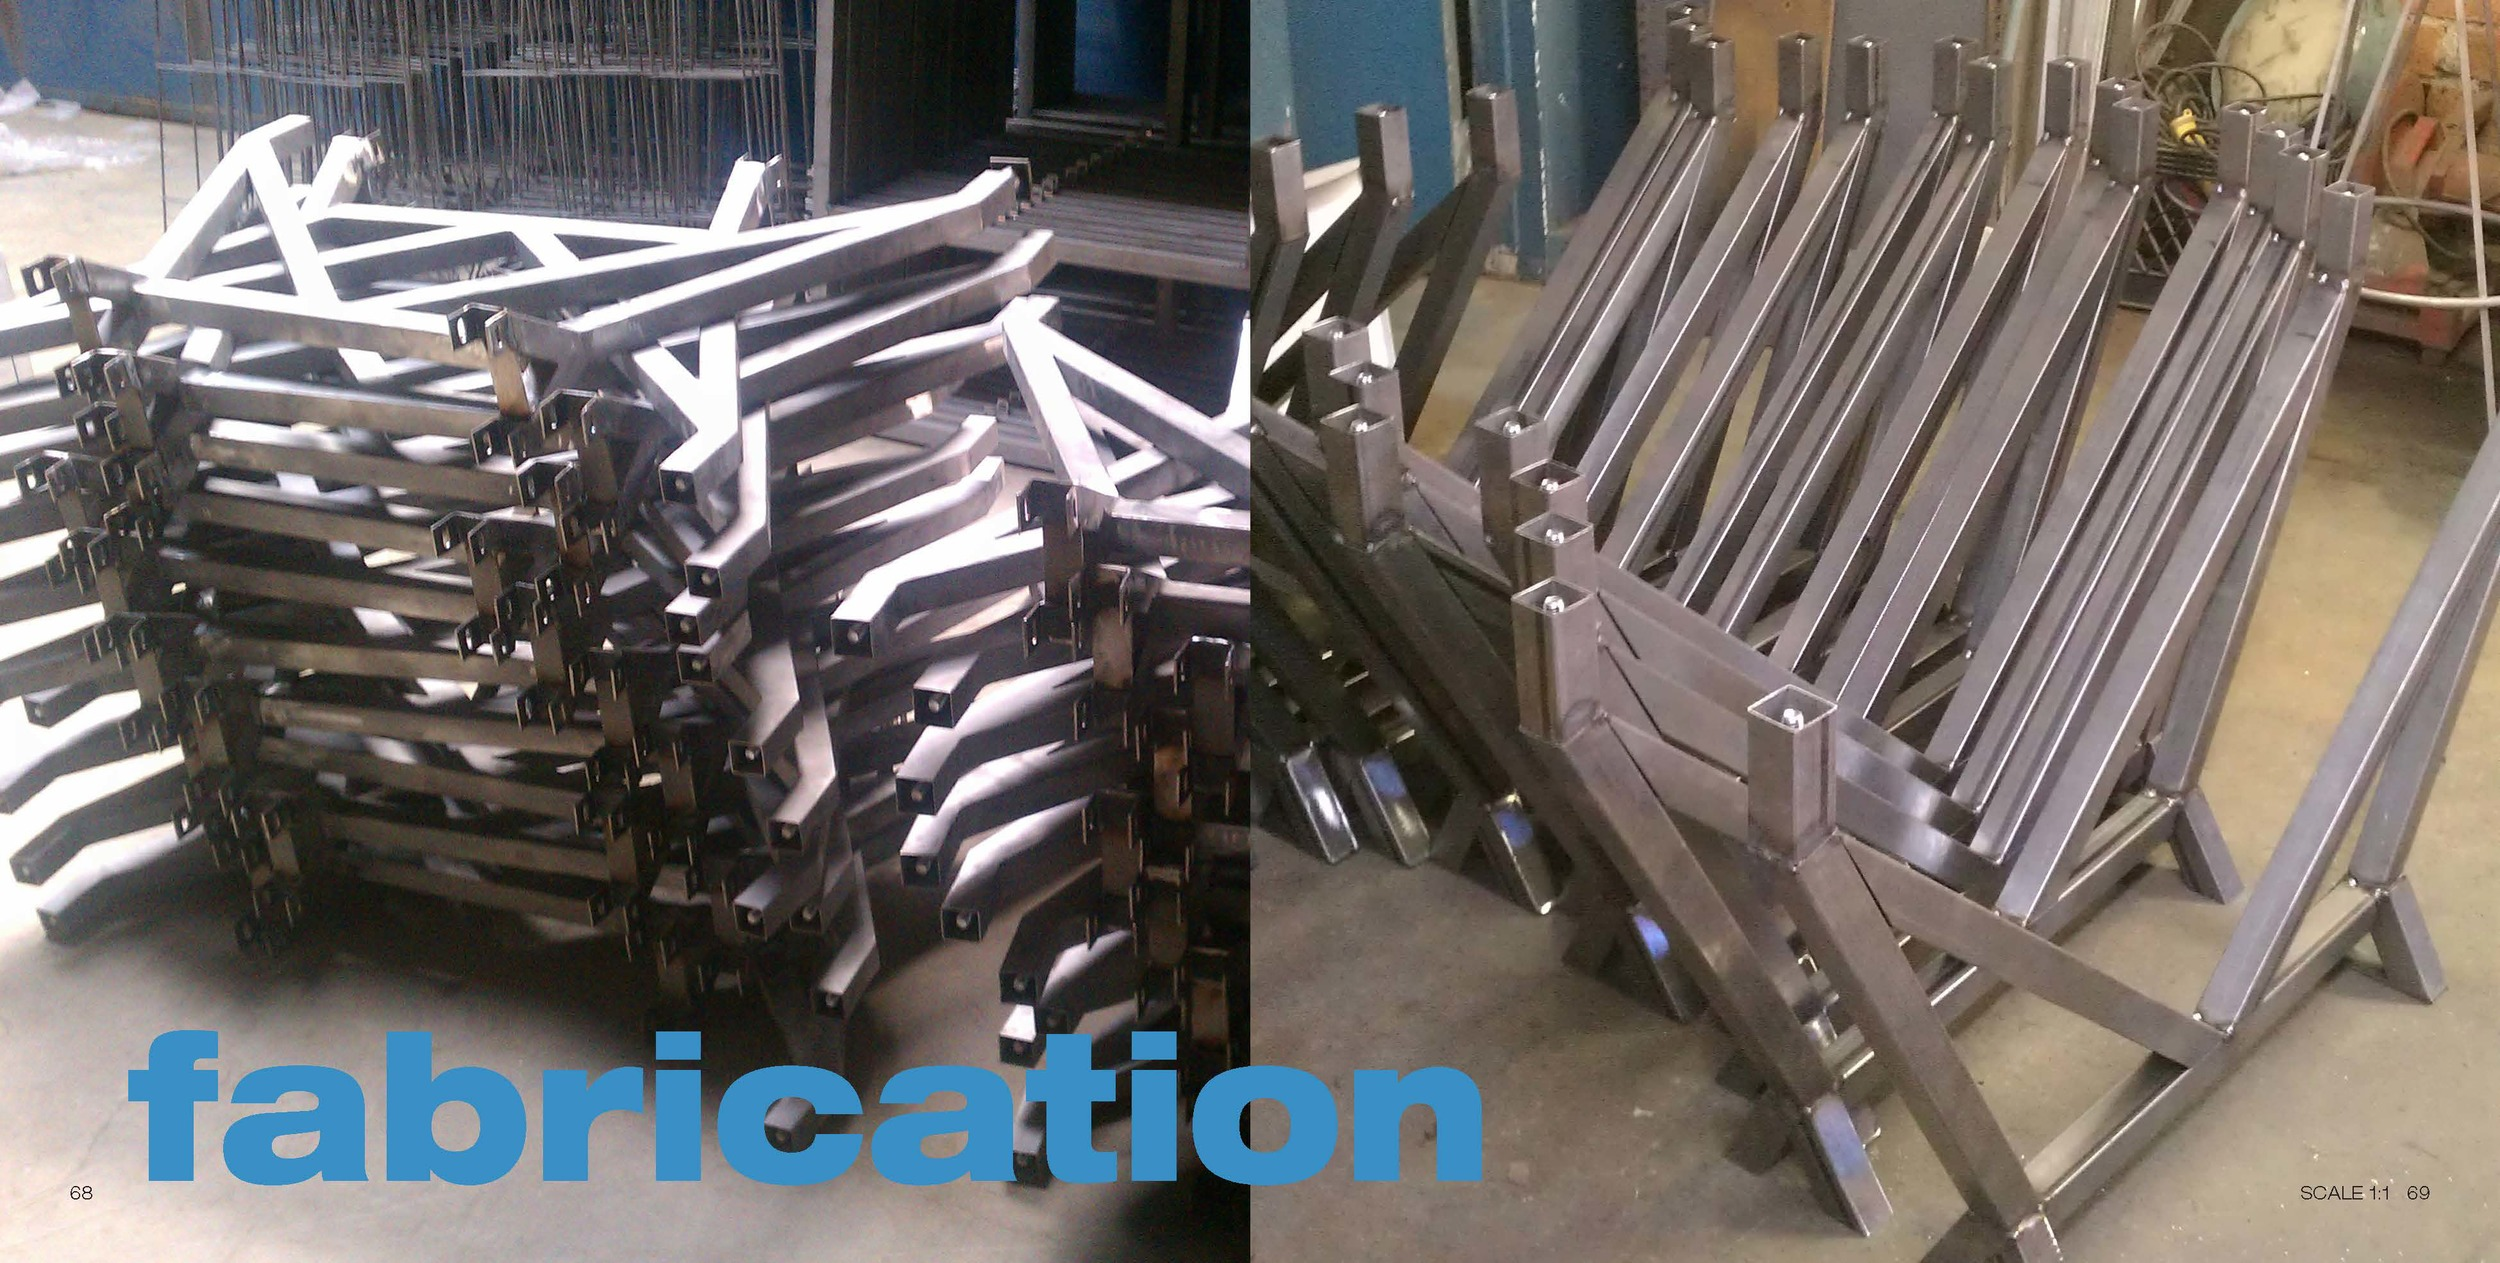 Production run of EYHOV Double legs ready for powder coating.